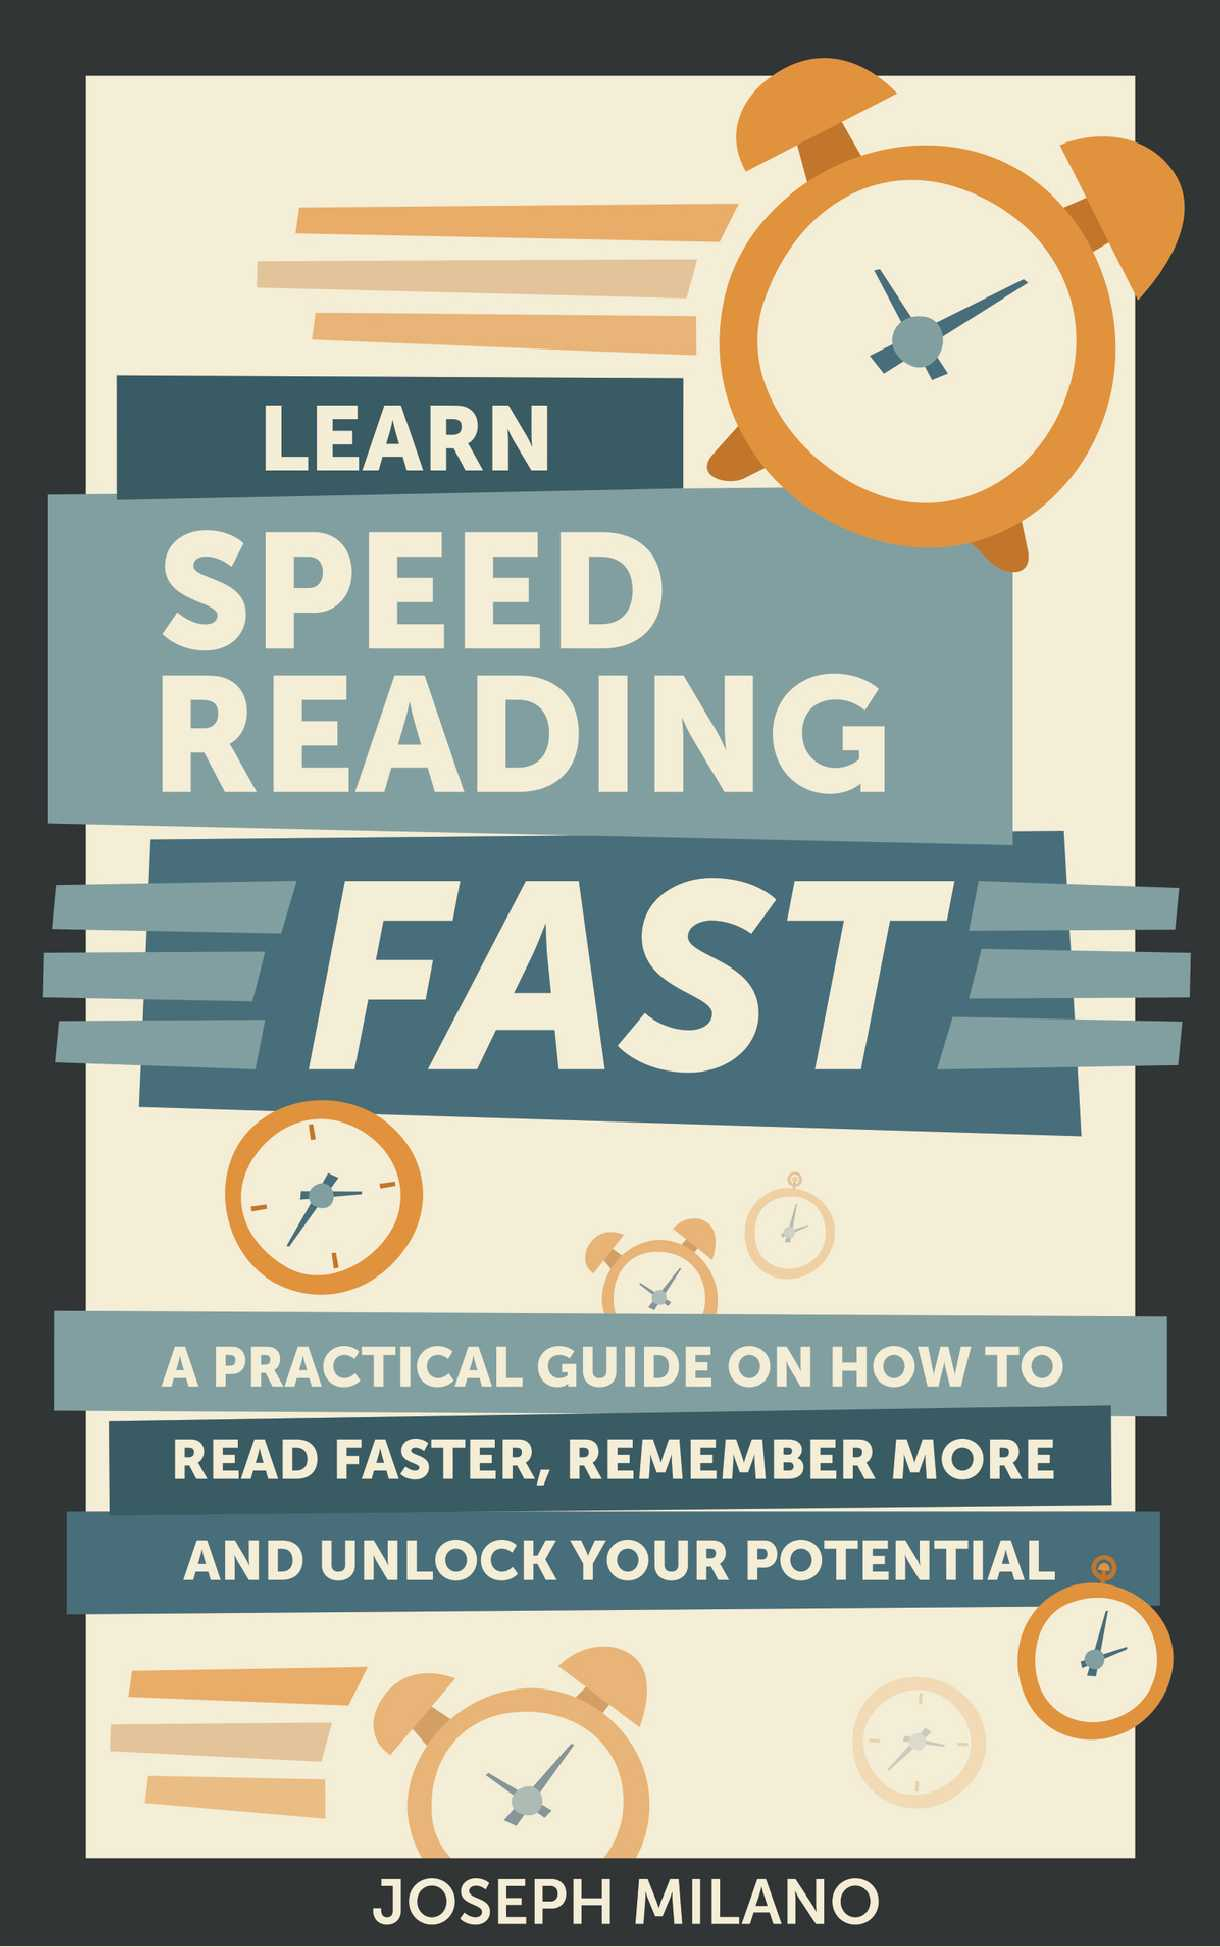 Learn Speed-Reading Fast: A Practical Guide on How to Read Faster, Remember More, and Unlock Your Potential